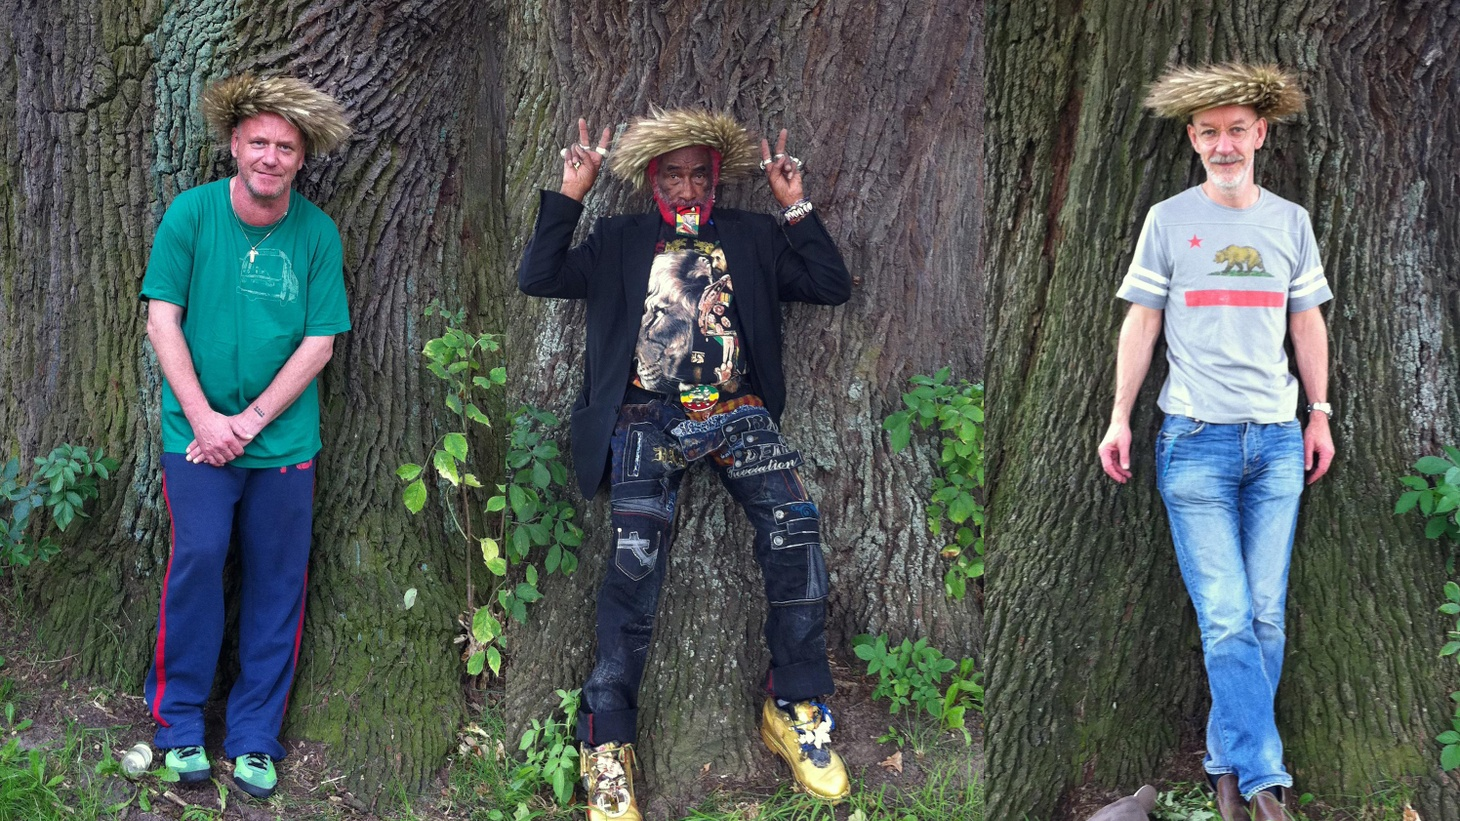 """Reggae pioneer Lee """"Scratch"""" Perry joins The Orb on their latest release. It is a match made in dub heaven..."""